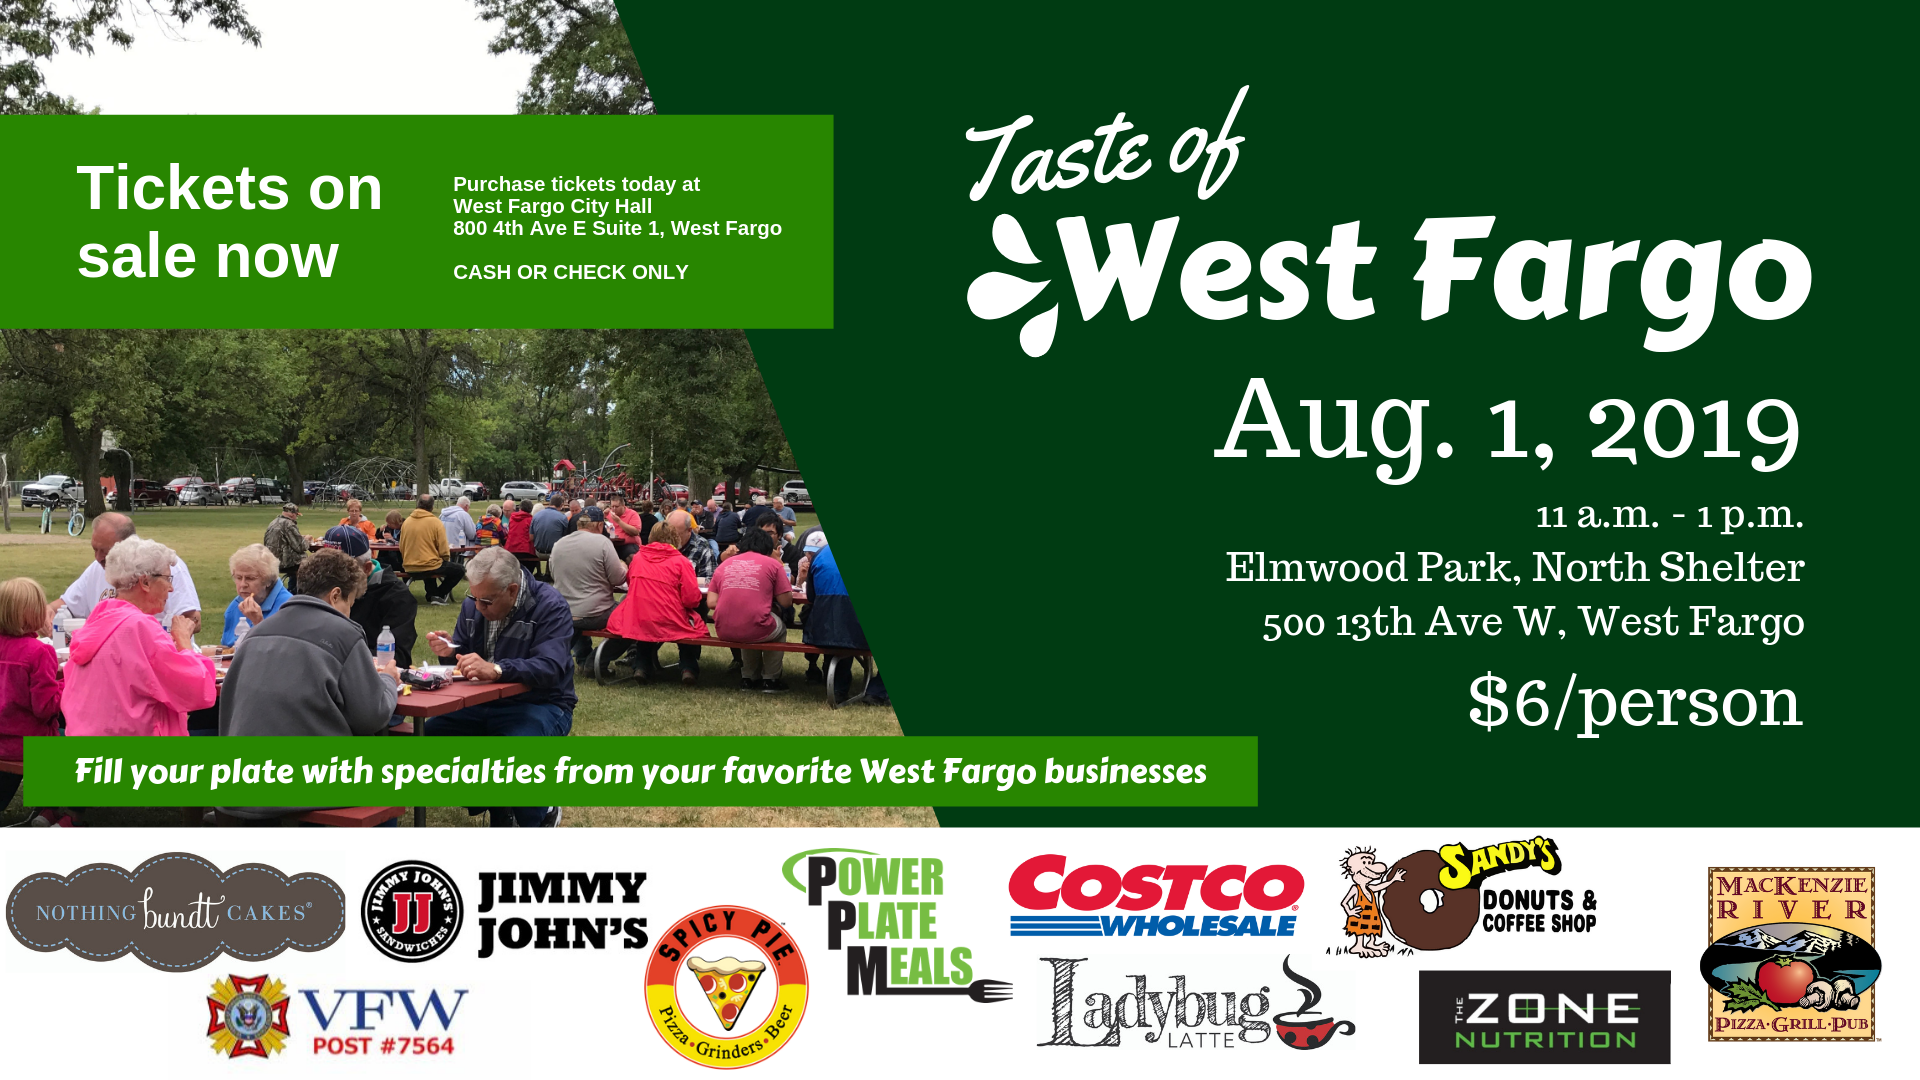 Taste of West Fargo promotional image